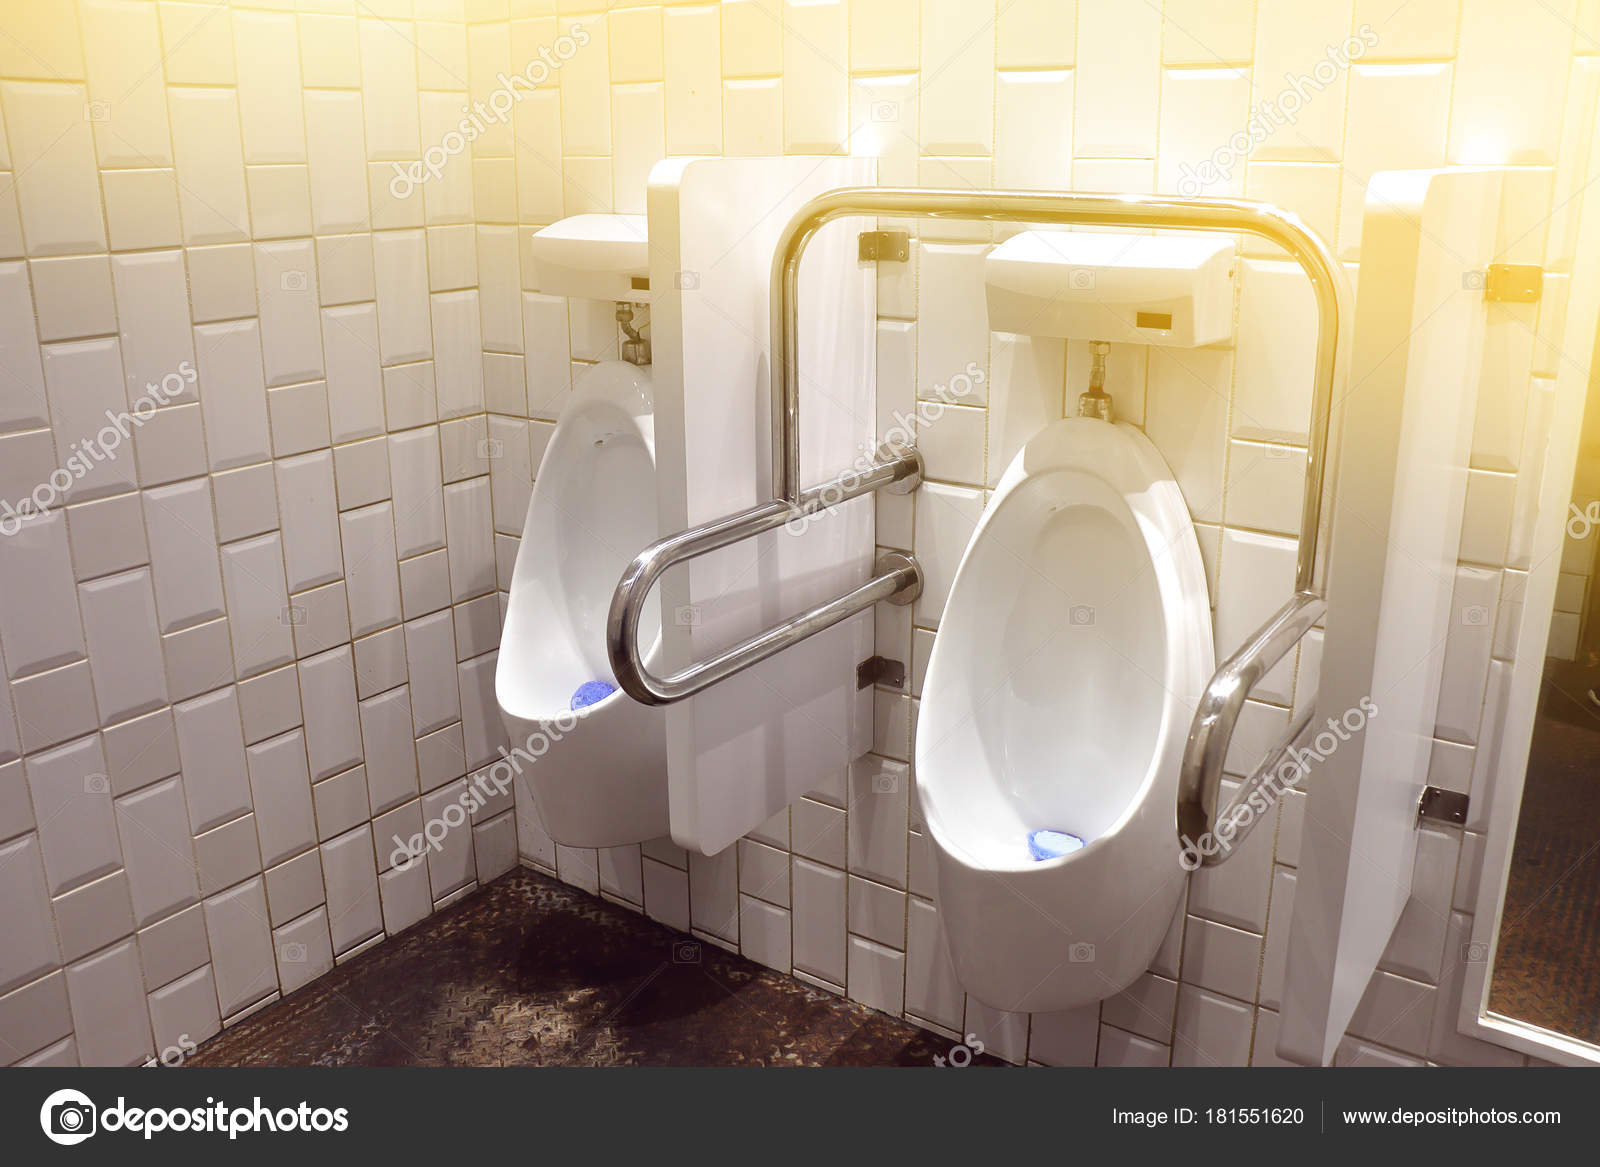 handrail in pub men toilet for people with disability. — Stock Photo ...